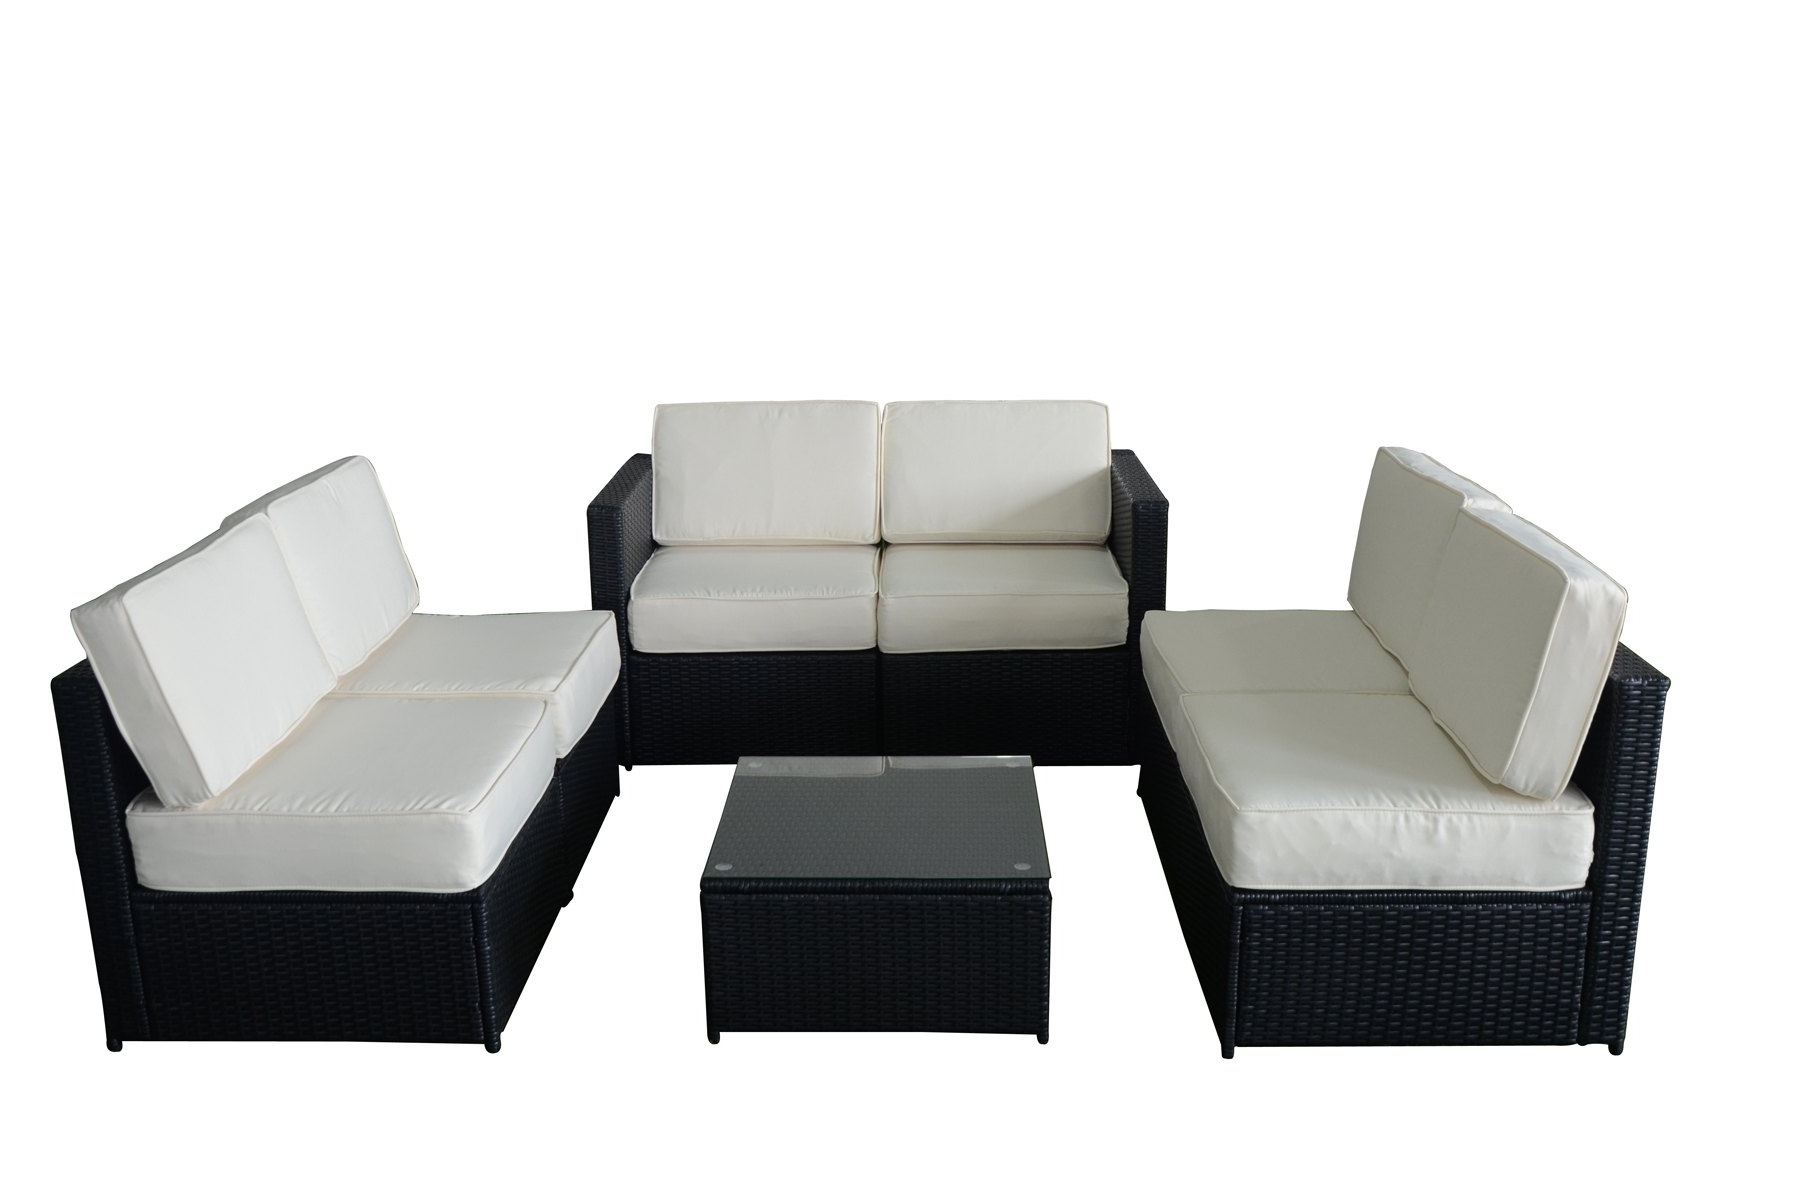 Outdoor Sofa Chairs Intended For Trendy Mcombo (View 14 of 15)